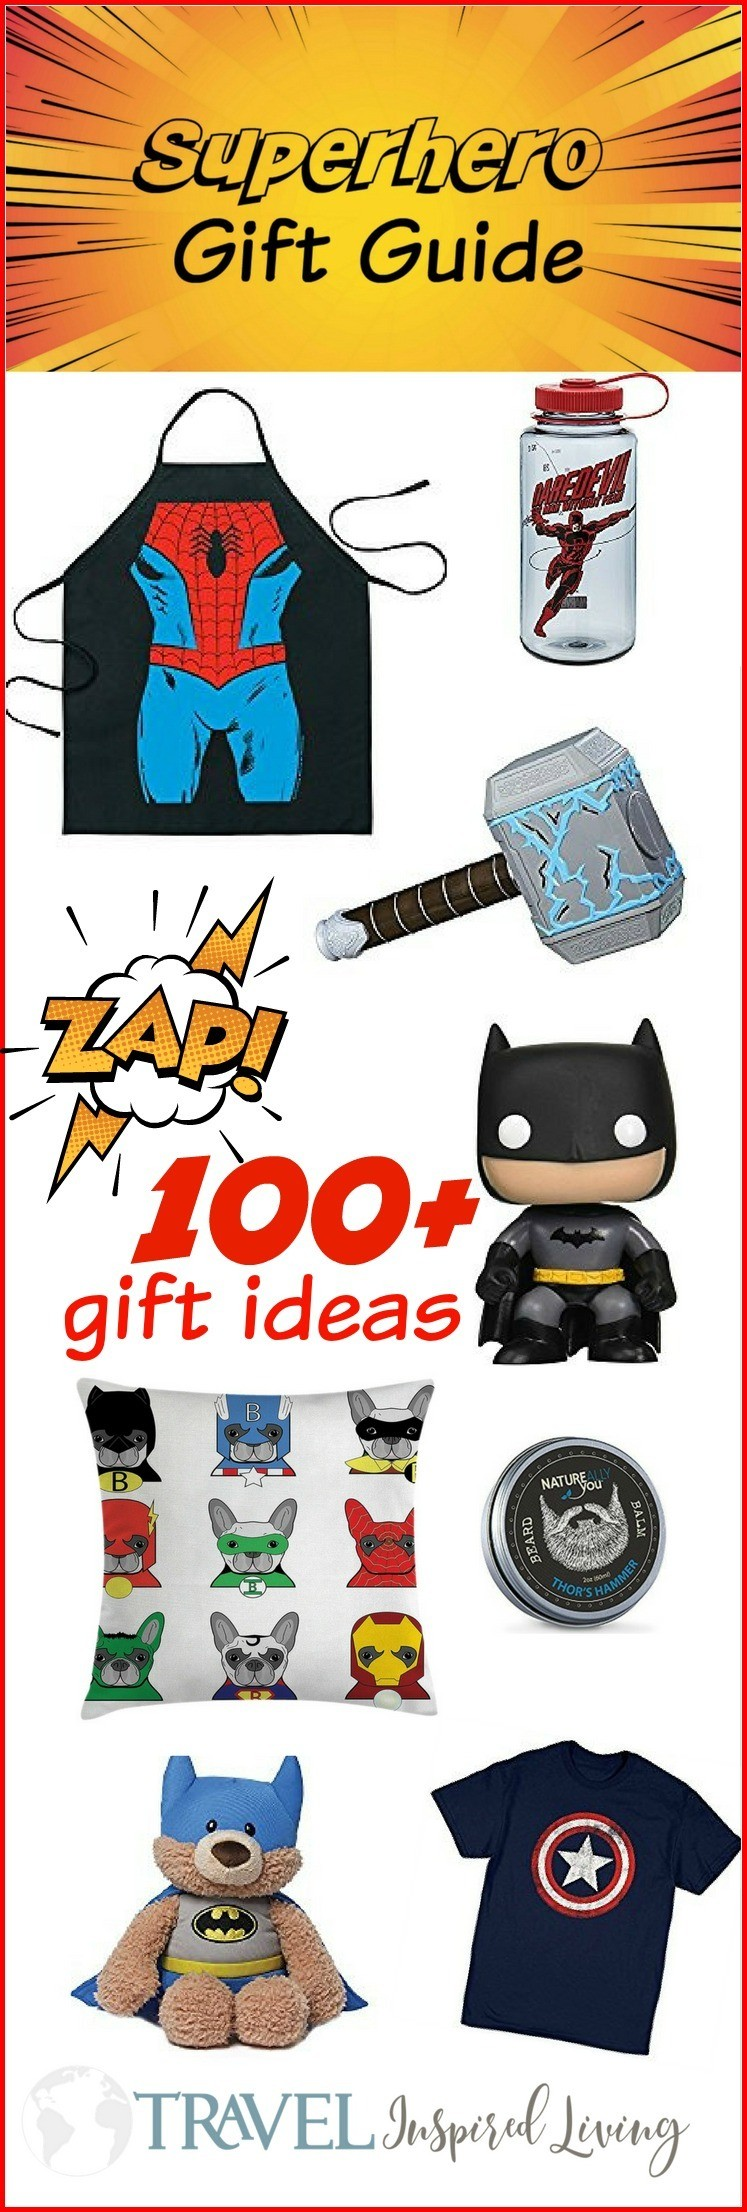 This Superhero gift guide has over 100 superhero gift ideas. You're sure to find something for the superhero lover in your life.